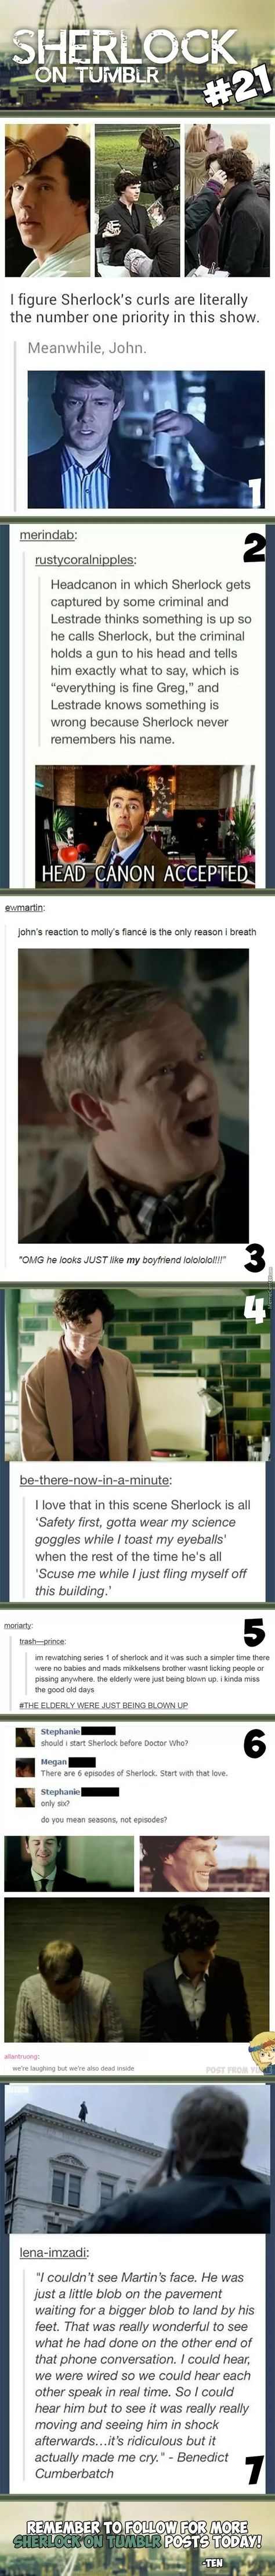 'Tomioka Giyu Demon Slayer' Sticker by WhiteTPoison Sherlock Meme, Sherlock Holmes Bbc, Sherlock John, Sherlock Quotes, Sherlock Tumblr, Johnlock Tumblr, Sherlock Comic, Sherlock Poster, Sherlock Moriarty